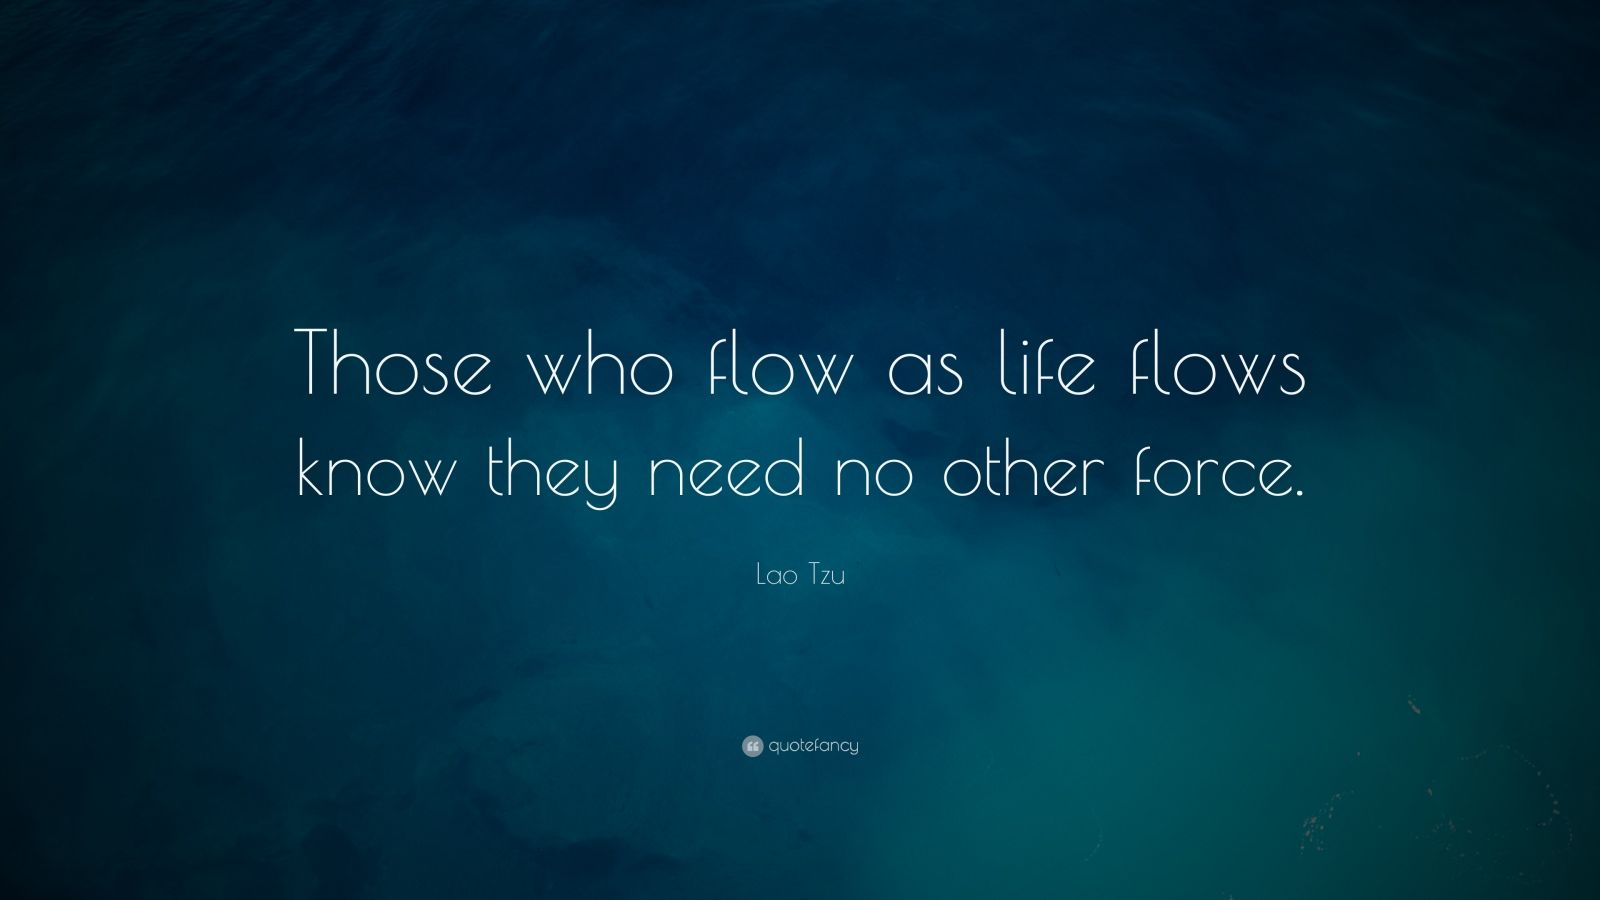 Lao Tzu Quotes Life Brilliant Lao Tzu Quotes 94 Wallpapers  Quotefancy